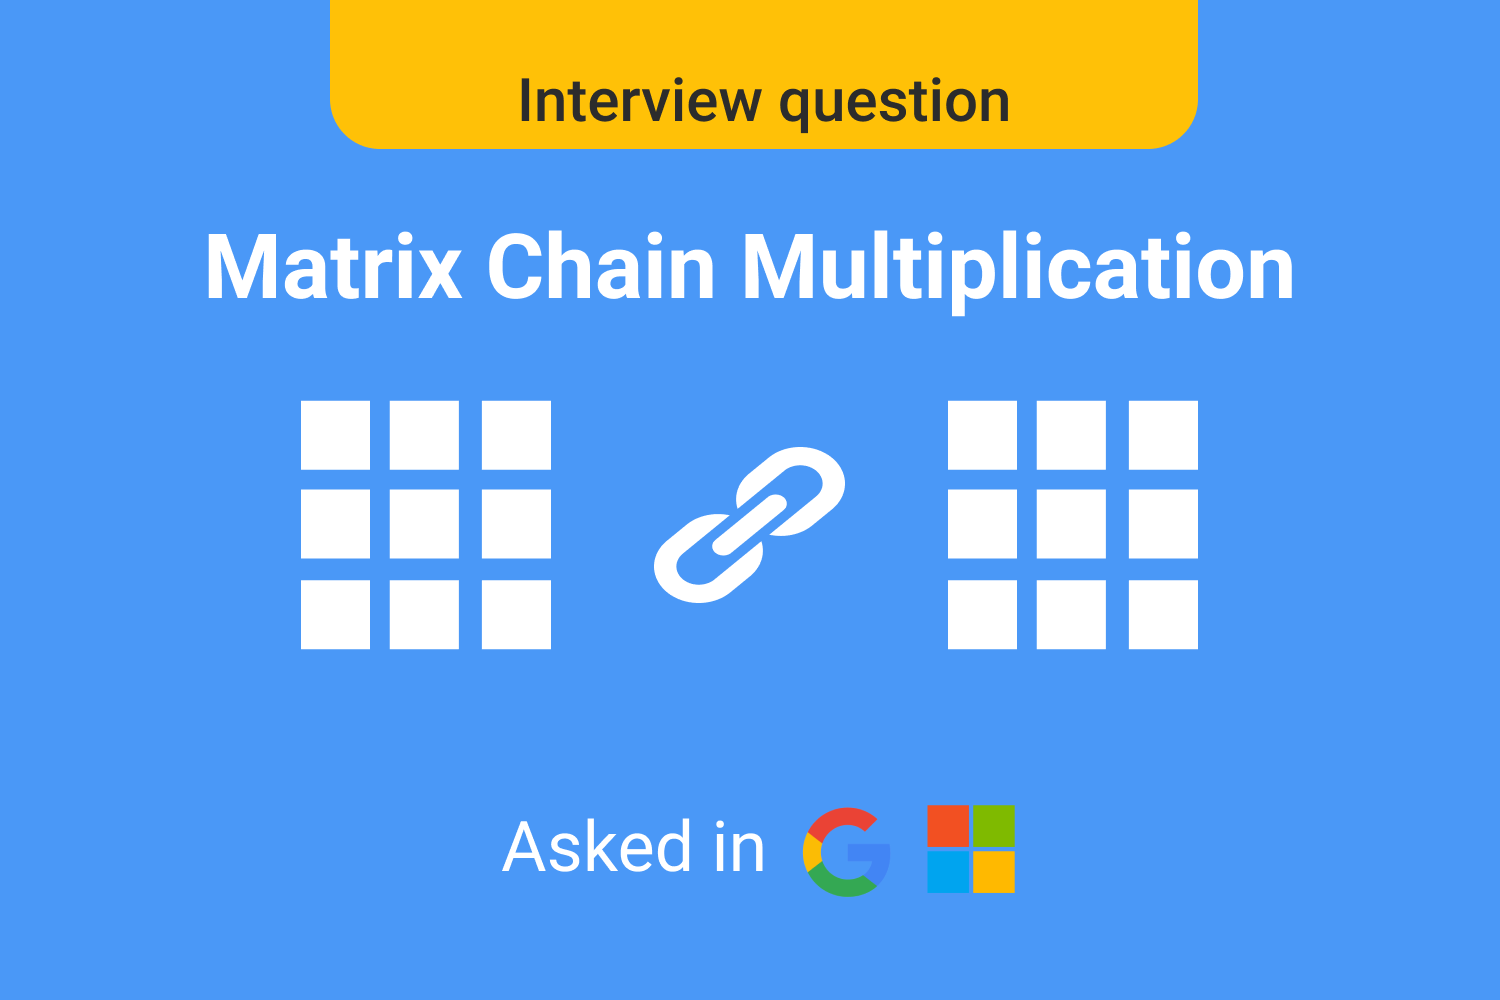 Matrix Chain Multiplication